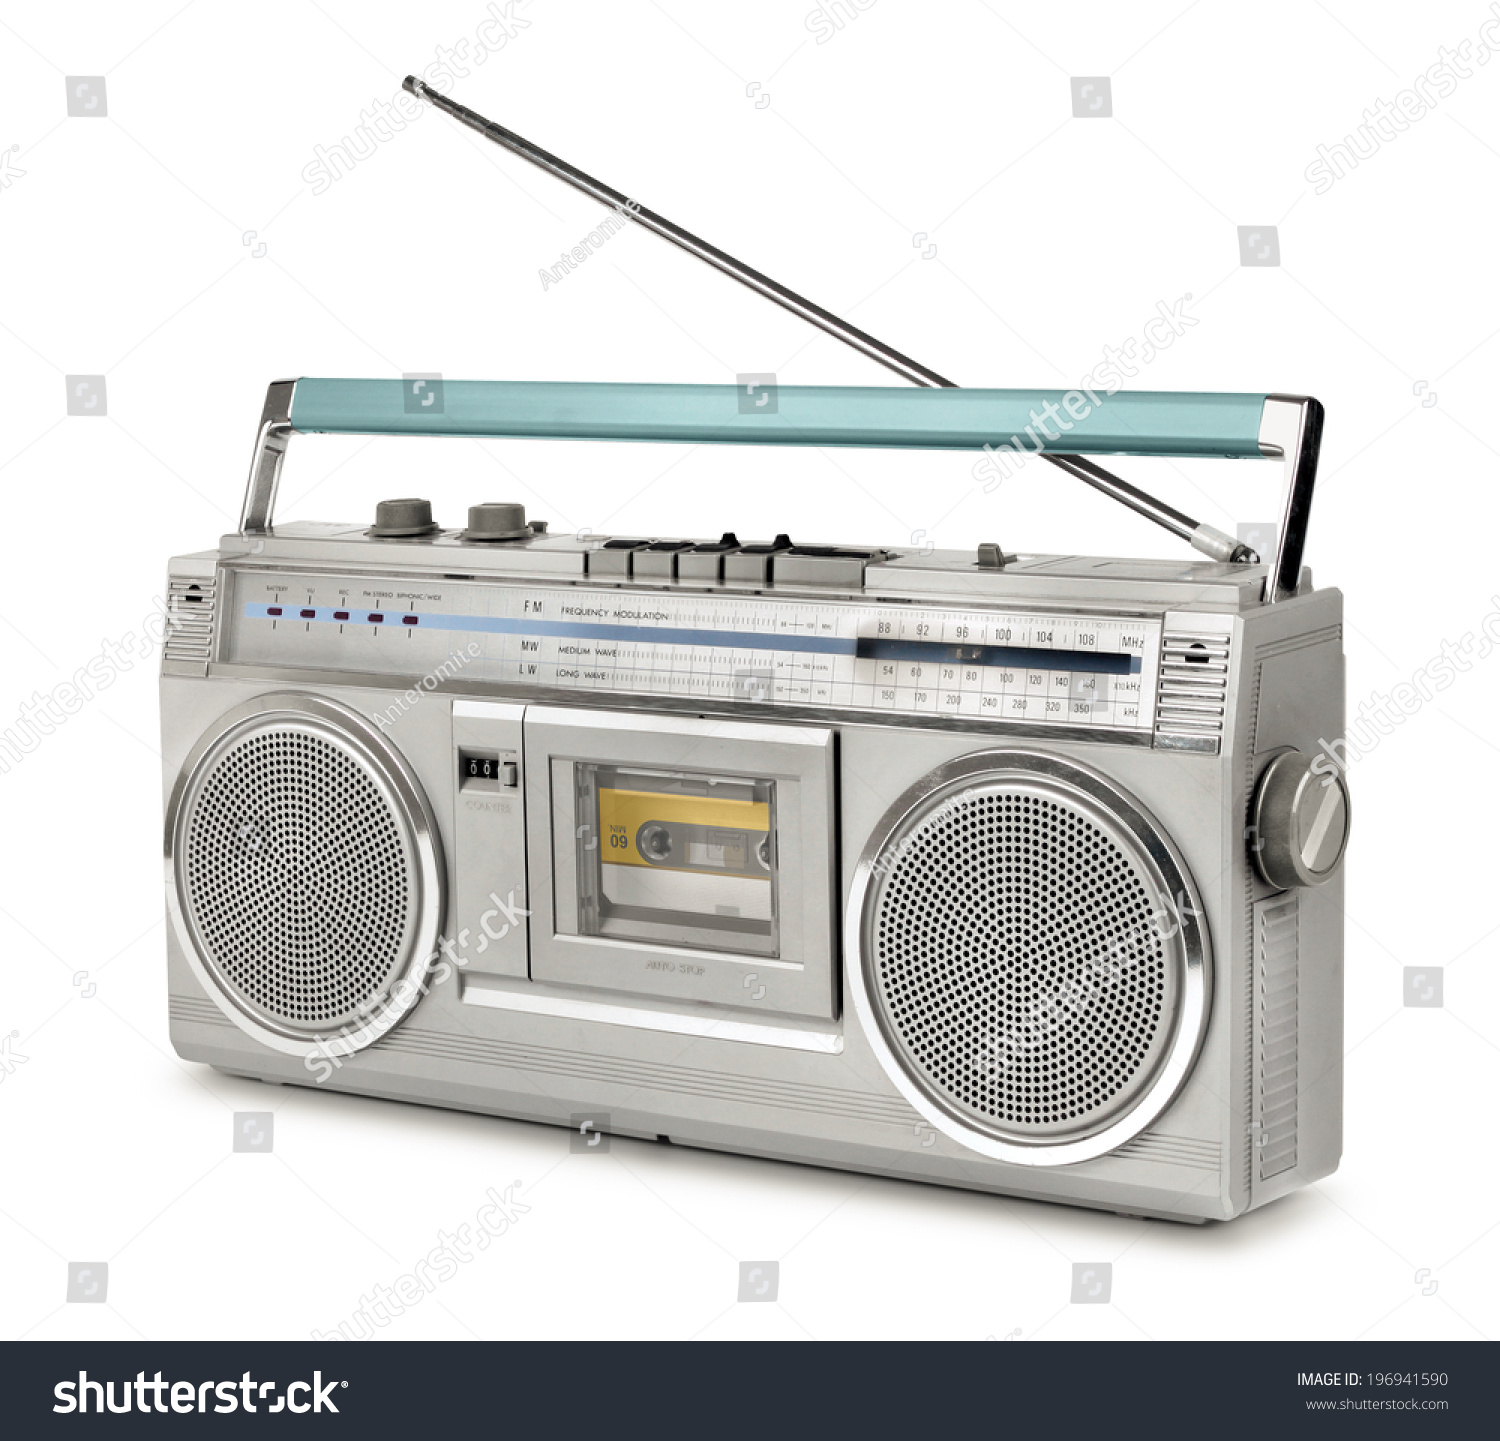 vintage stereo radio cassette player 80s stock photo. Black Bedroom Furniture Sets. Home Design Ideas